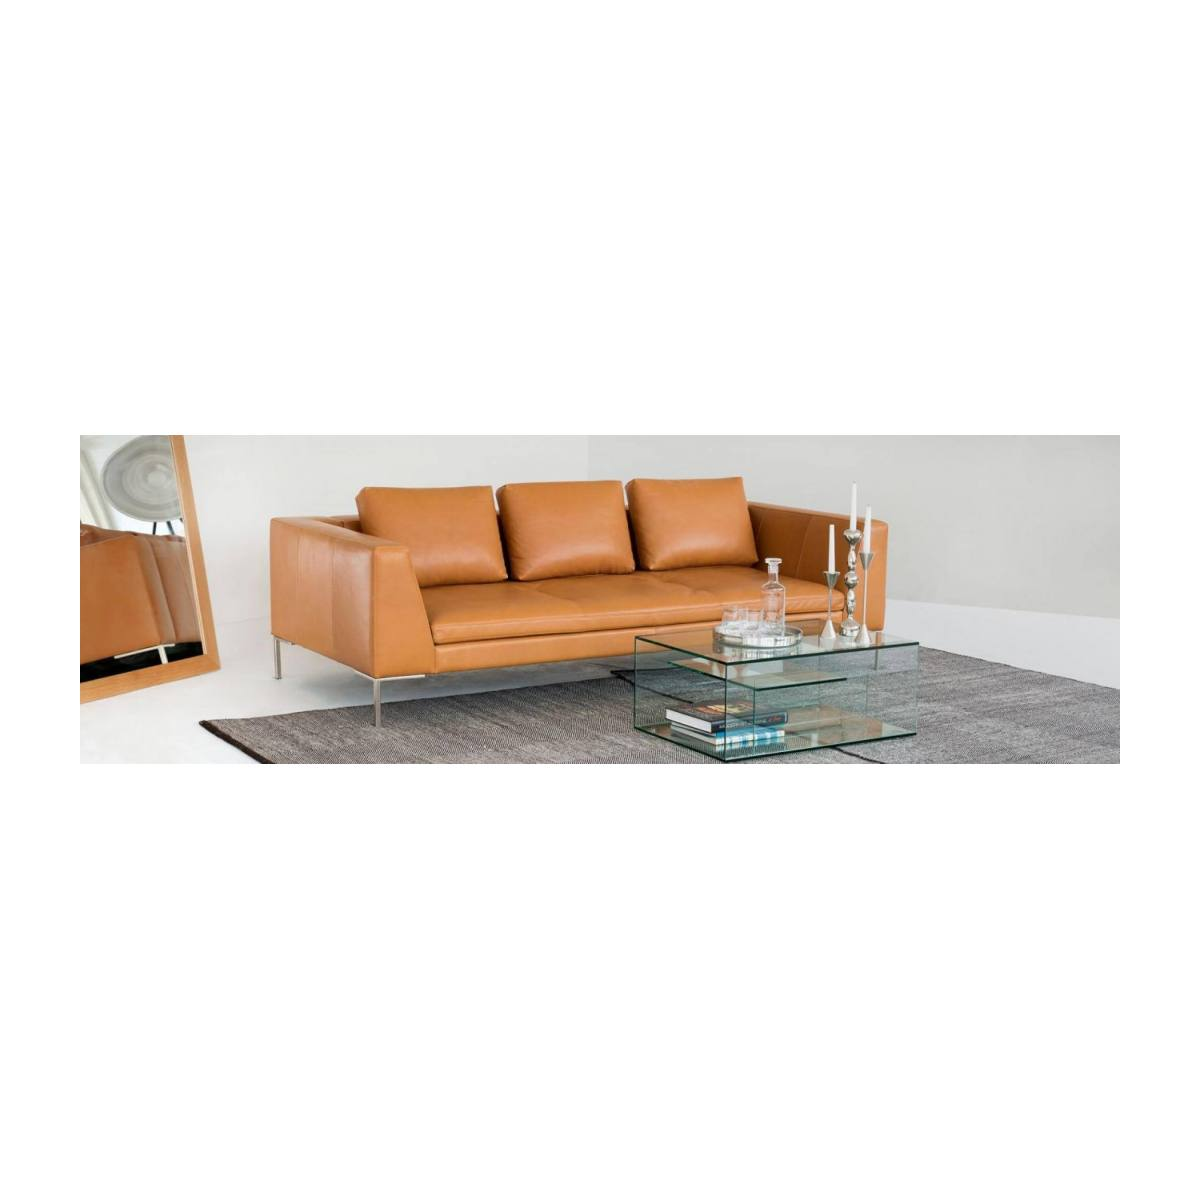 3 seater sofa in Eton veined leather, stone n°10